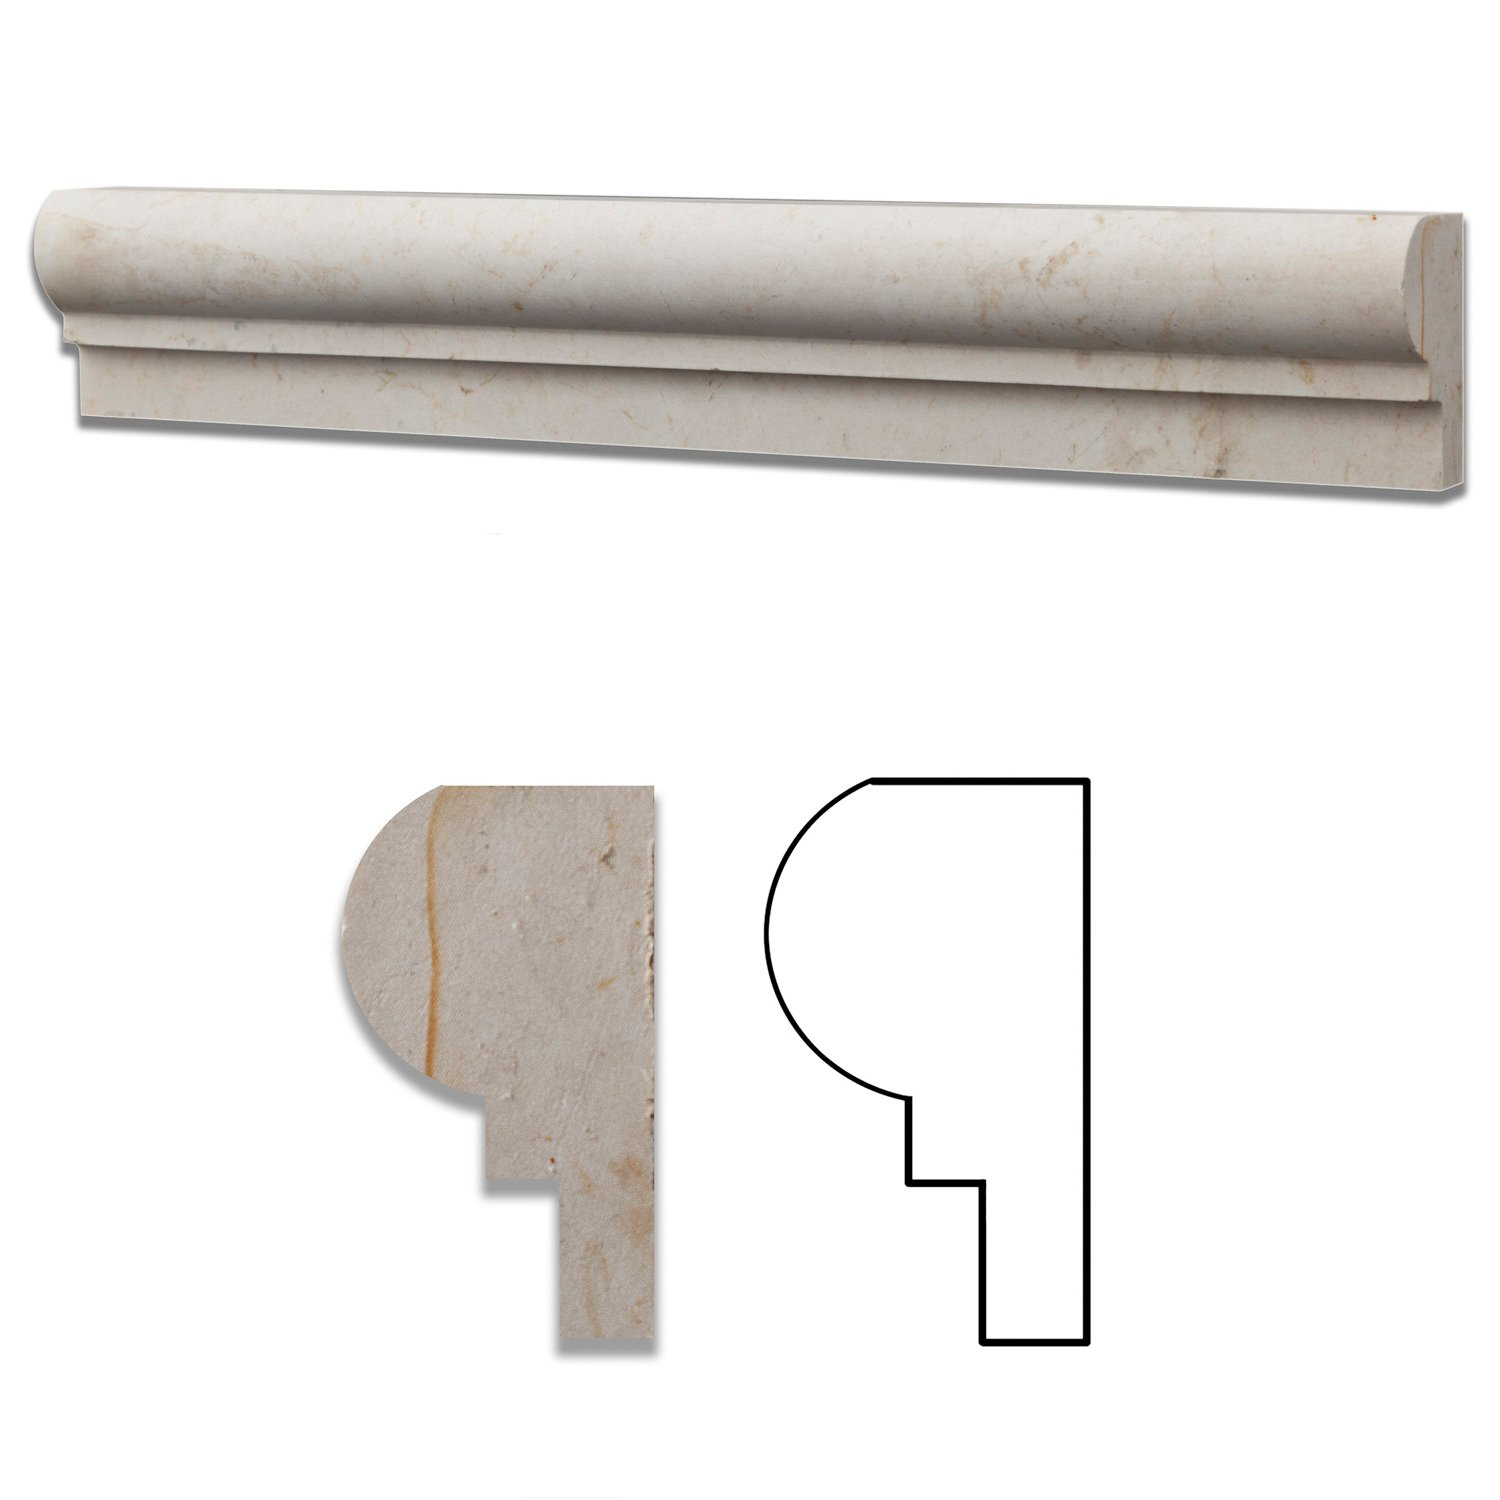 Botticino Marble Honed 2 X 12 Chair Rail Ogee-1 Molding - Standard Quality - BOX of 15 PCS